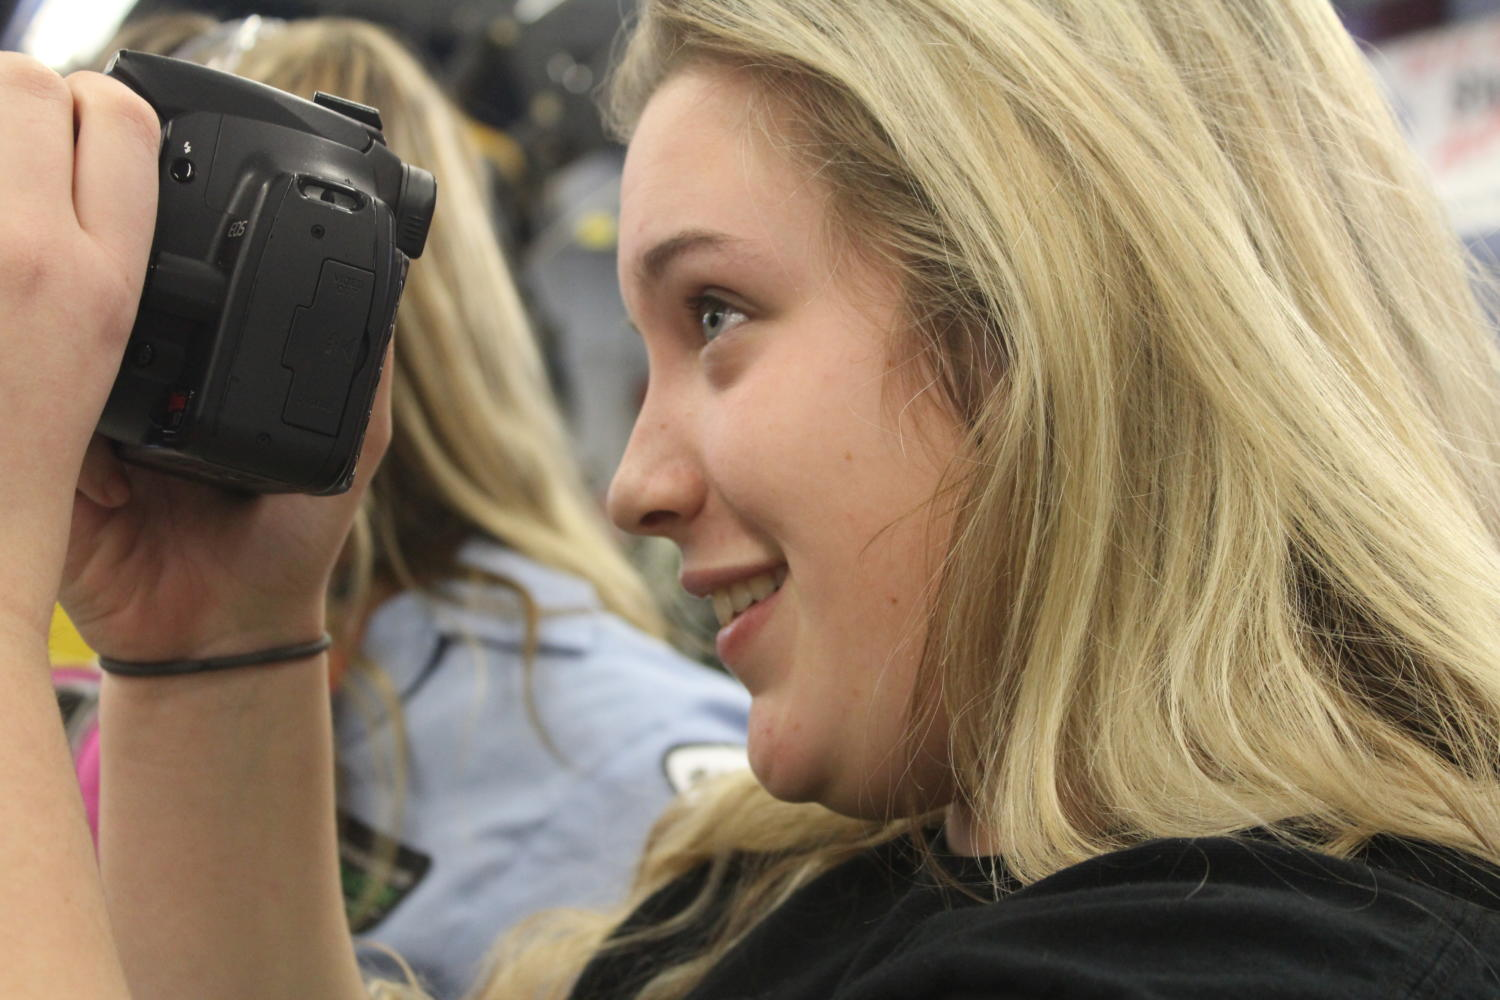 High+school+student+Hailey+Hasenyager+focuses+her+camera.+She+is+on+her+school%27s+publication+staff.